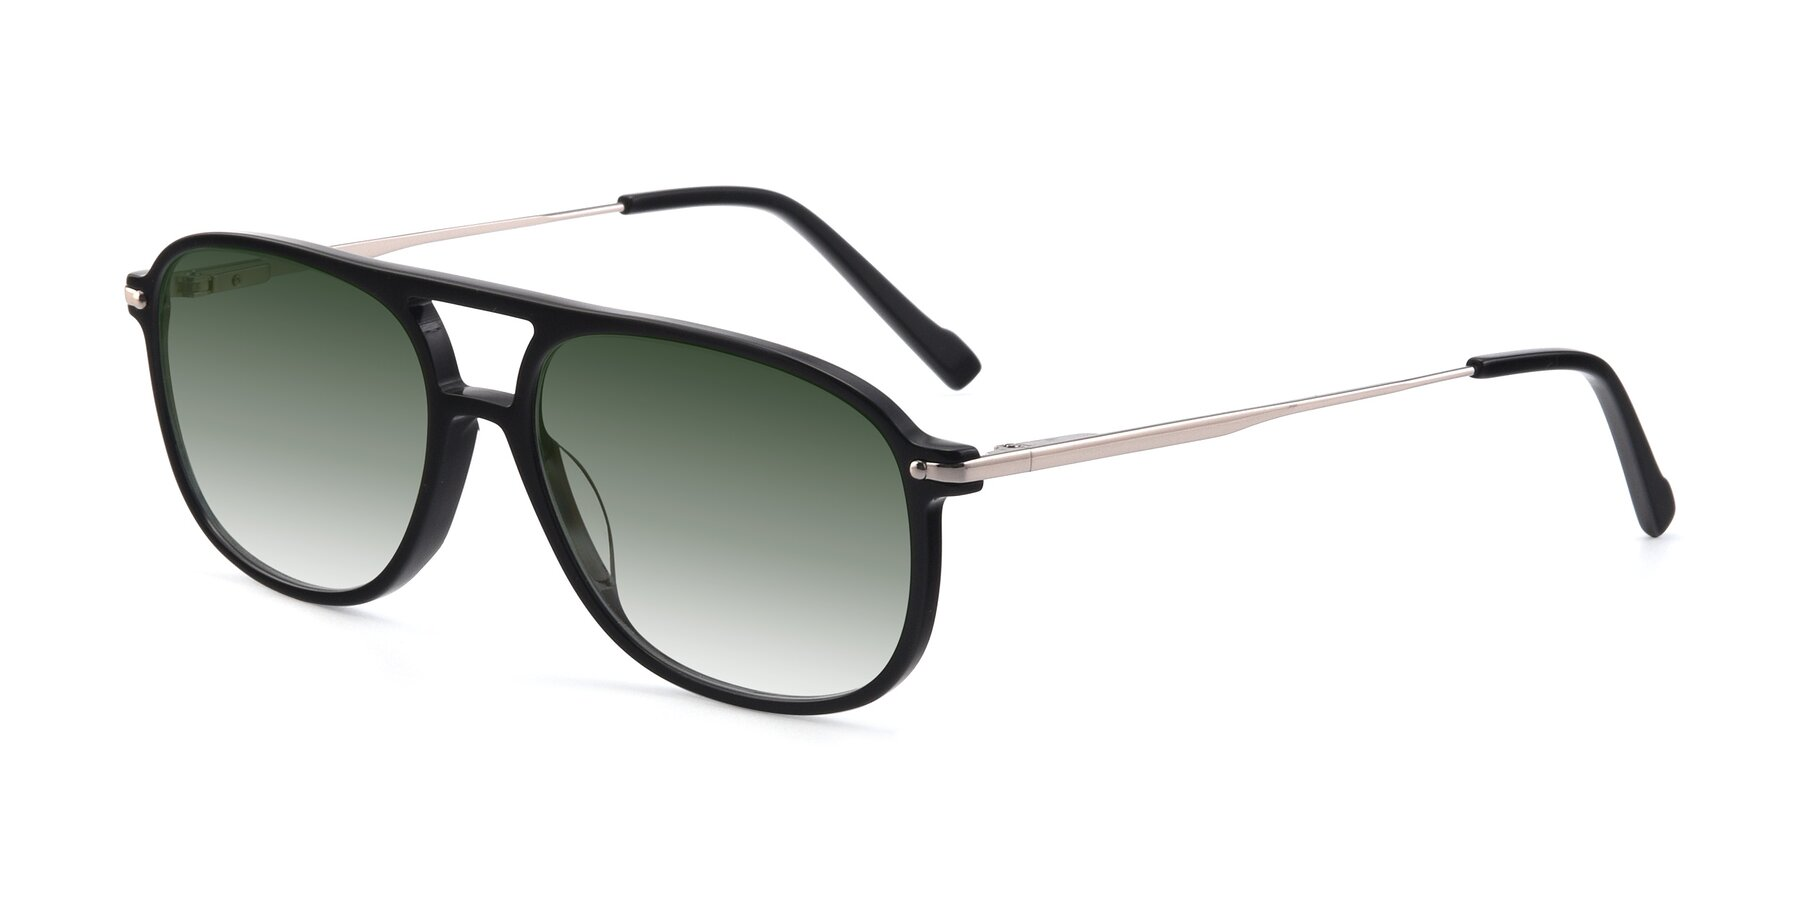 Angle of 17580 in Black with Green Gradient Lenses